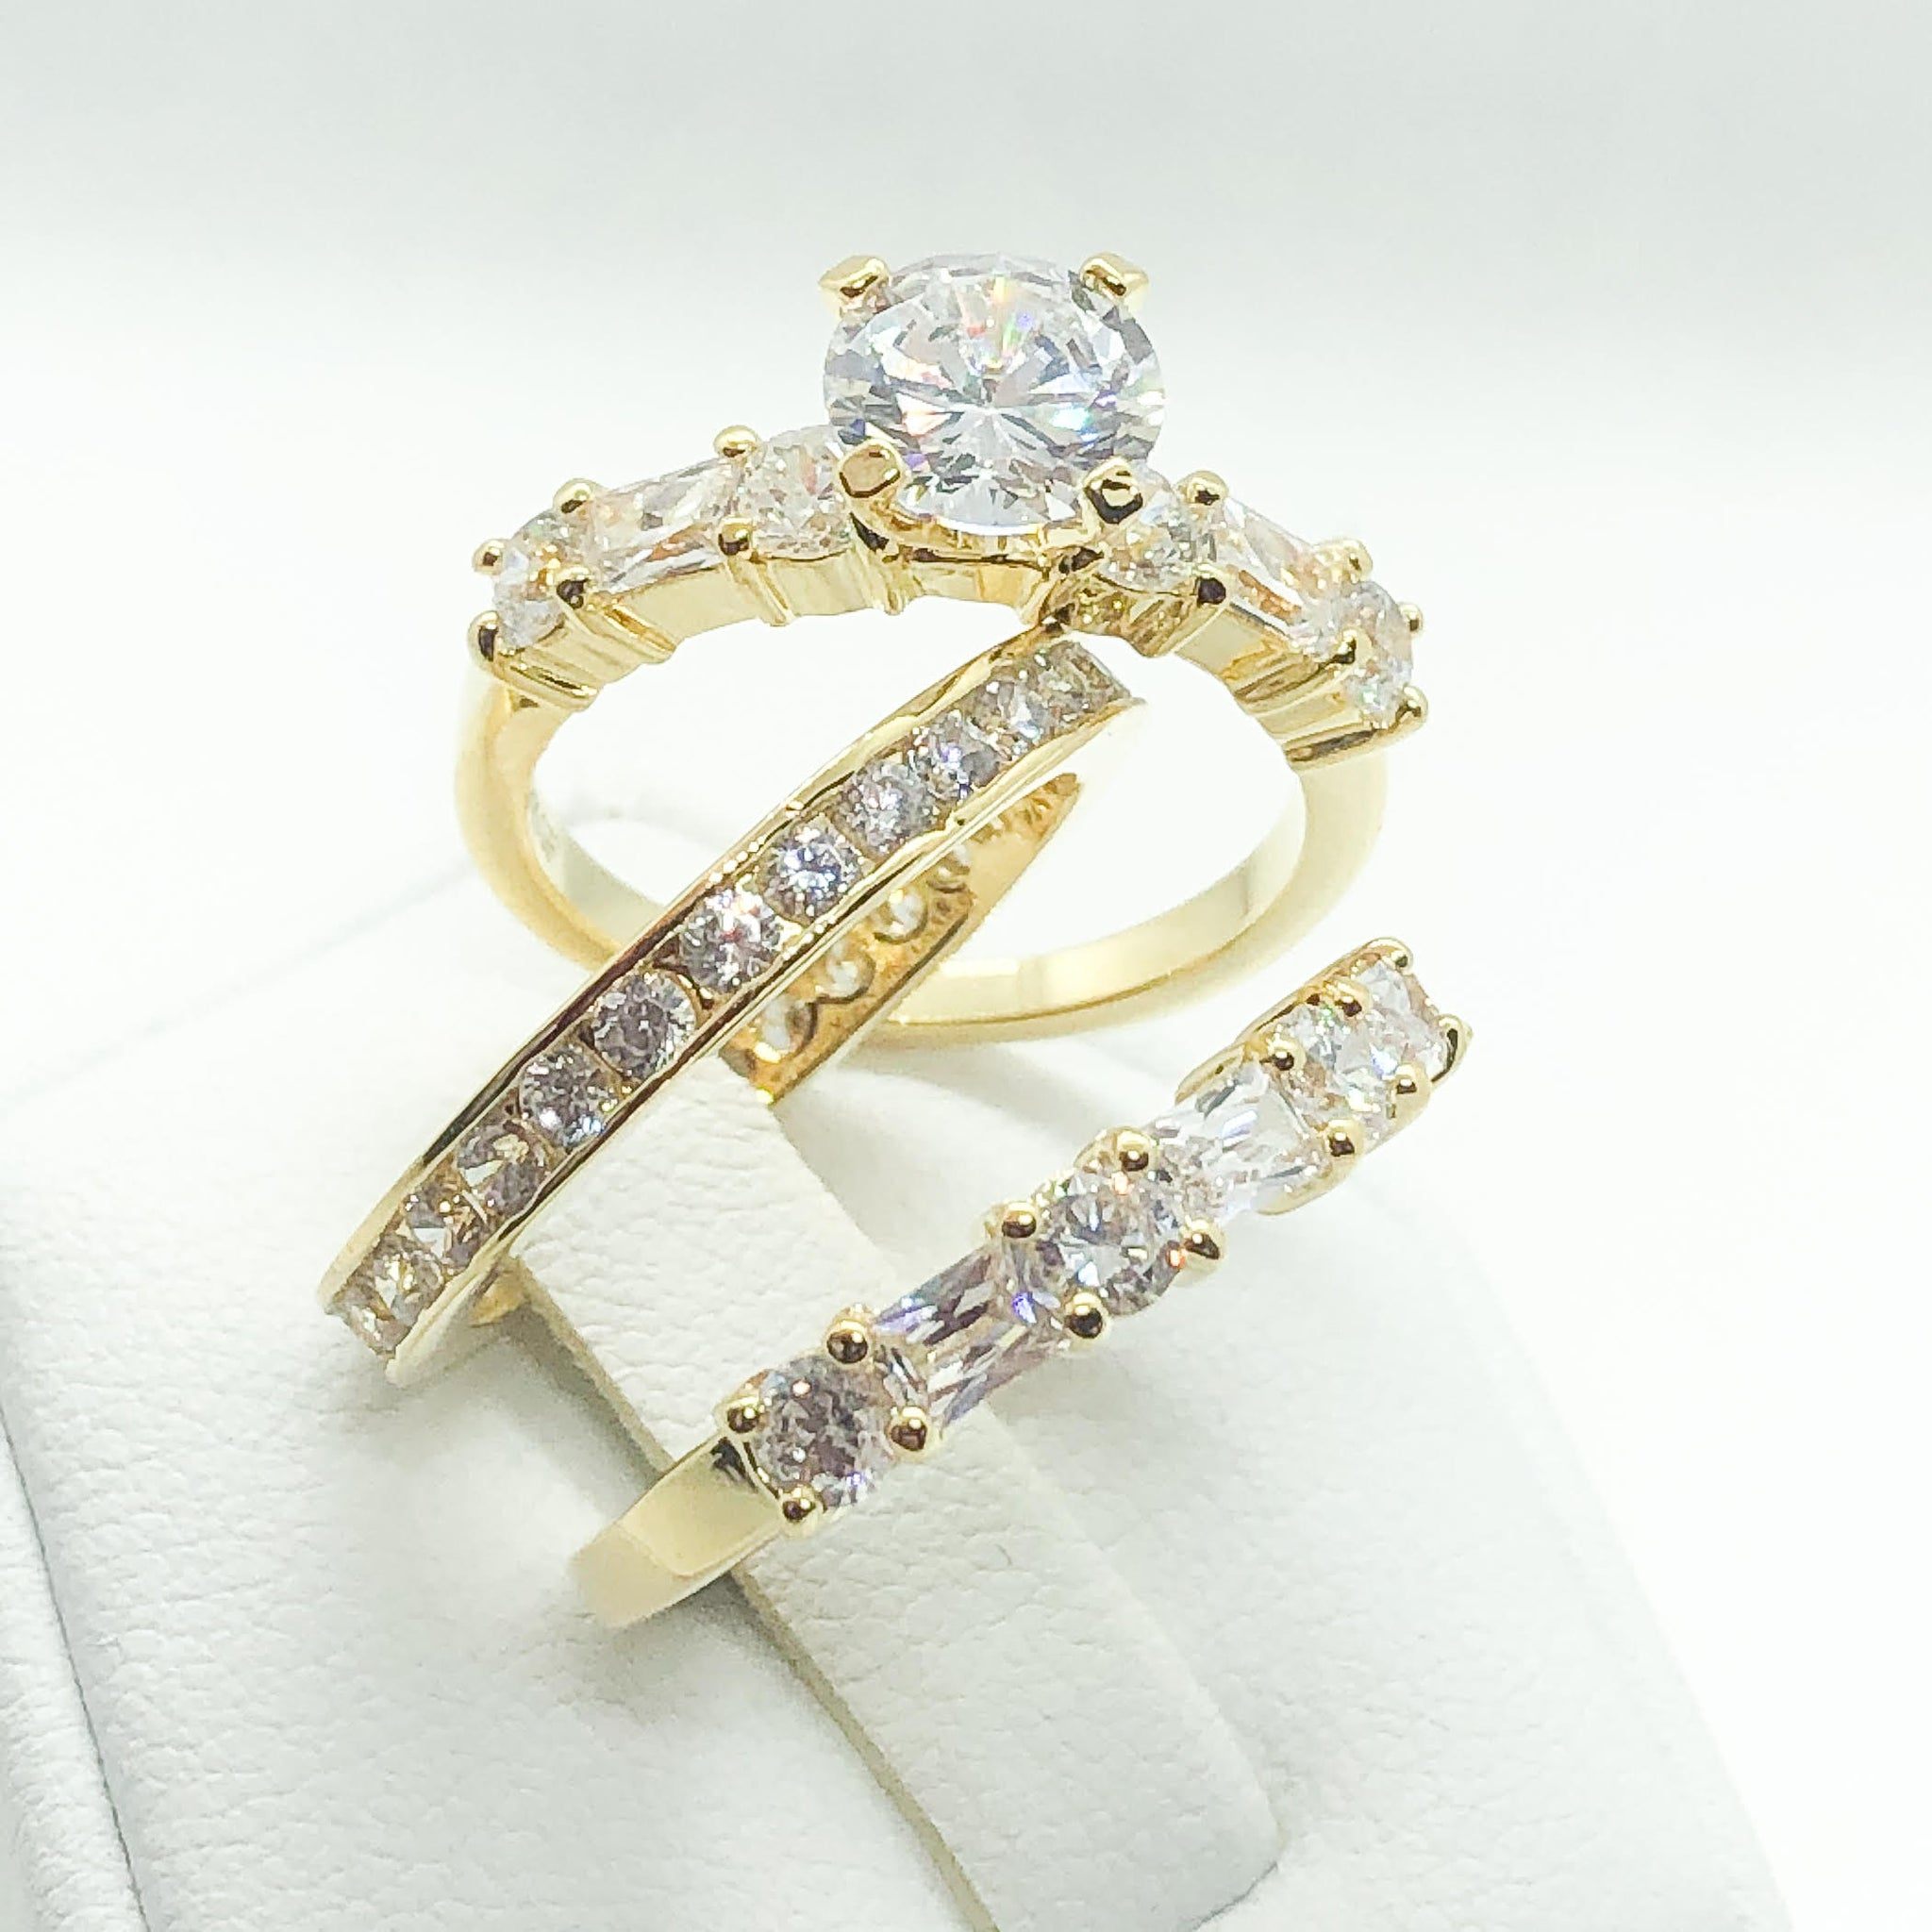 ID:R5593 Women 18K Yellow Gold GF Hand-Crafted Vintage Jewelry Eye-Catching Engagement Wedding Bridal Band Ring 3pcs/Set